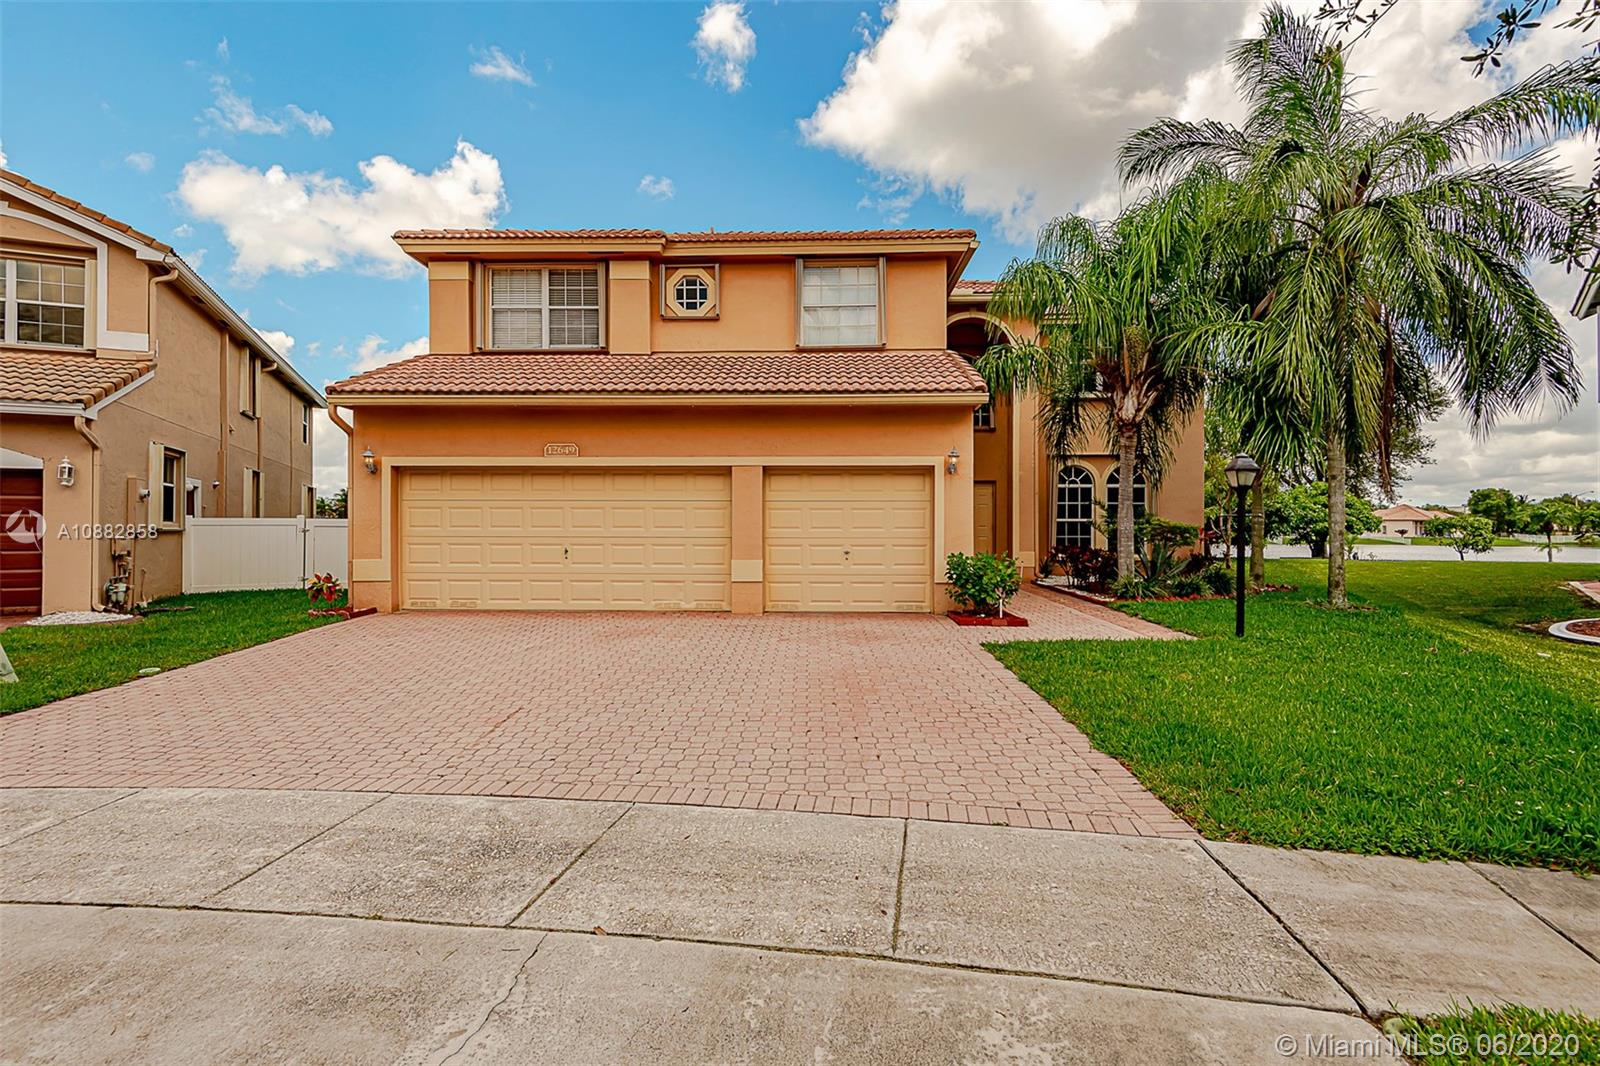 Come look at it a tremendously beautiful home Cascade Excutive community in PEMBROKE FALLS  , Upgraded kitchen and bathrooms. come take a look, and all appointment for a showing must give 24hrs advance notice please follow the Covid 19 guidelines. Great schools,next to I75 and Pembroke Malls.